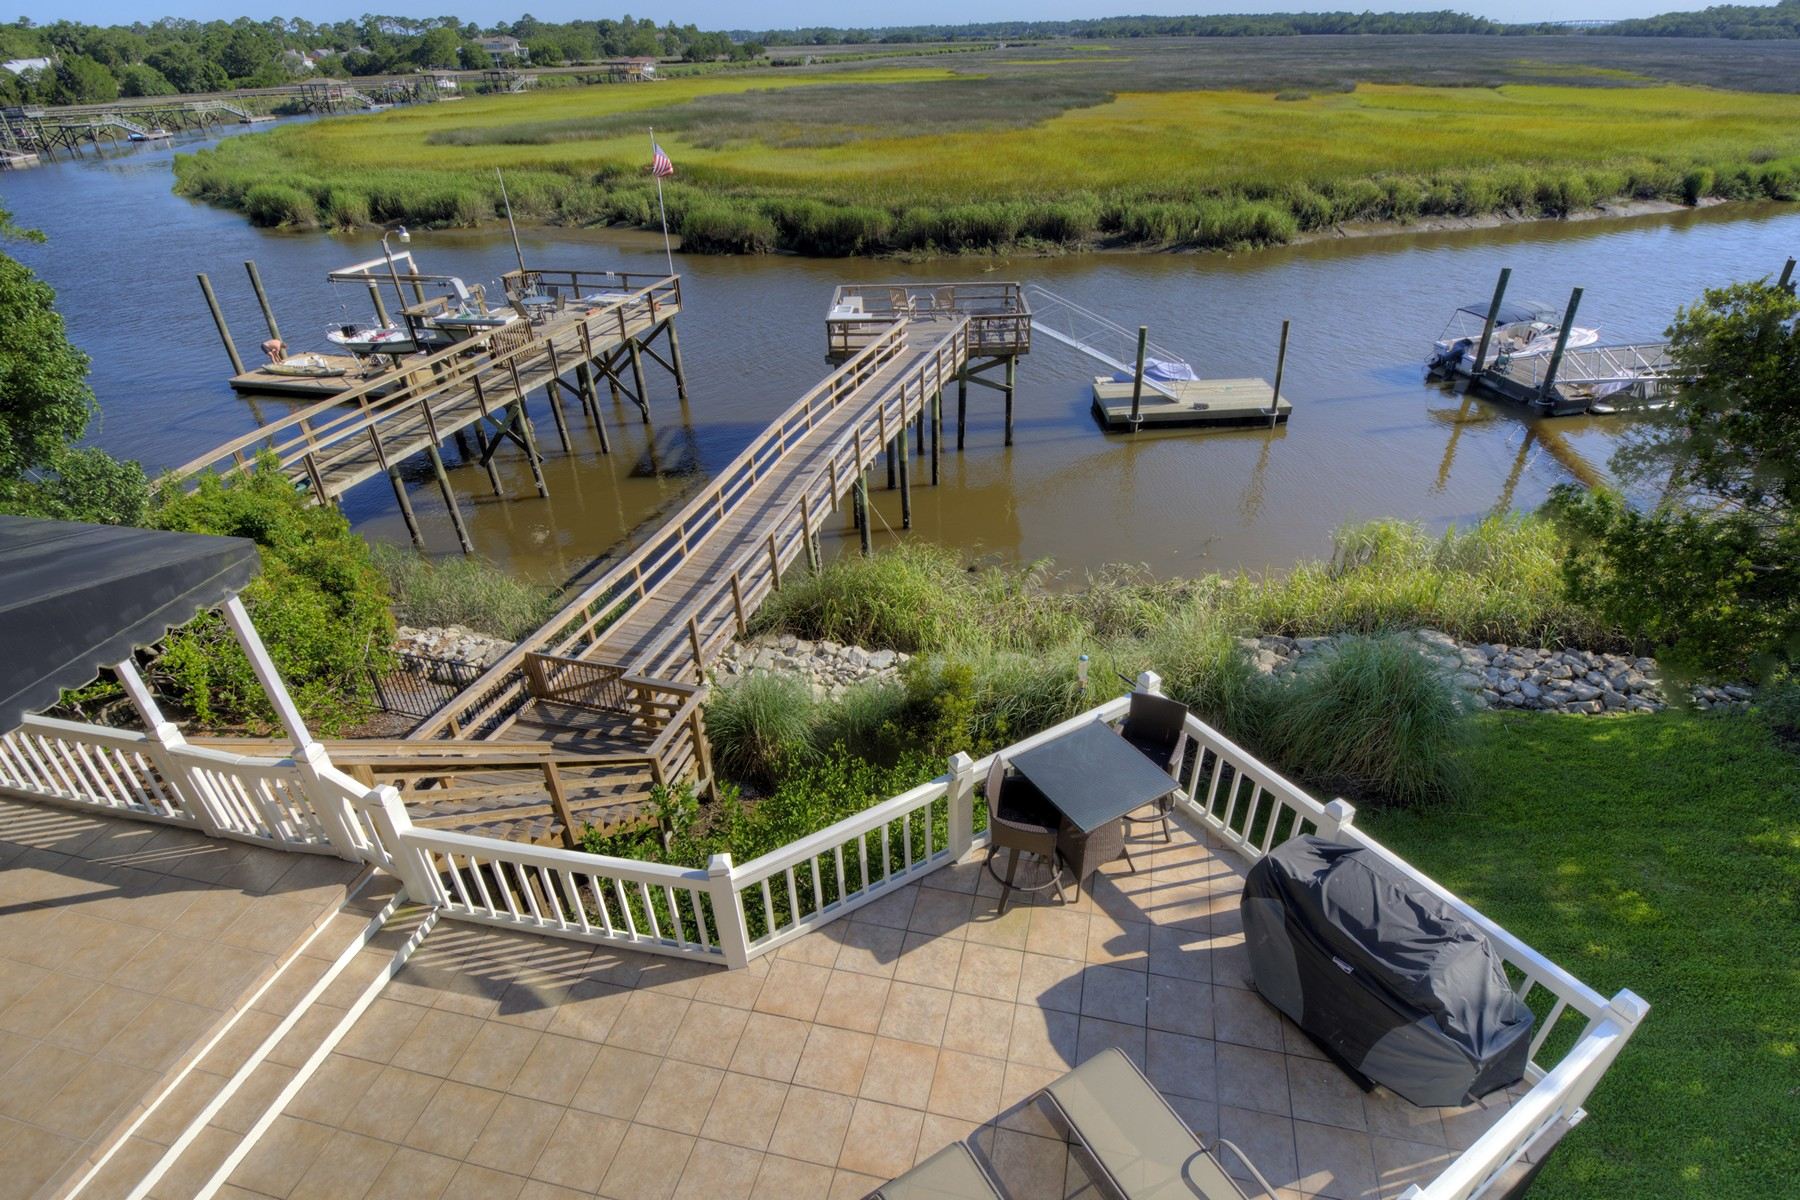 Single Family Home for Active at 5 Dunbar Creek Point Dr. St. Simons Island, Georgia 31522 United States